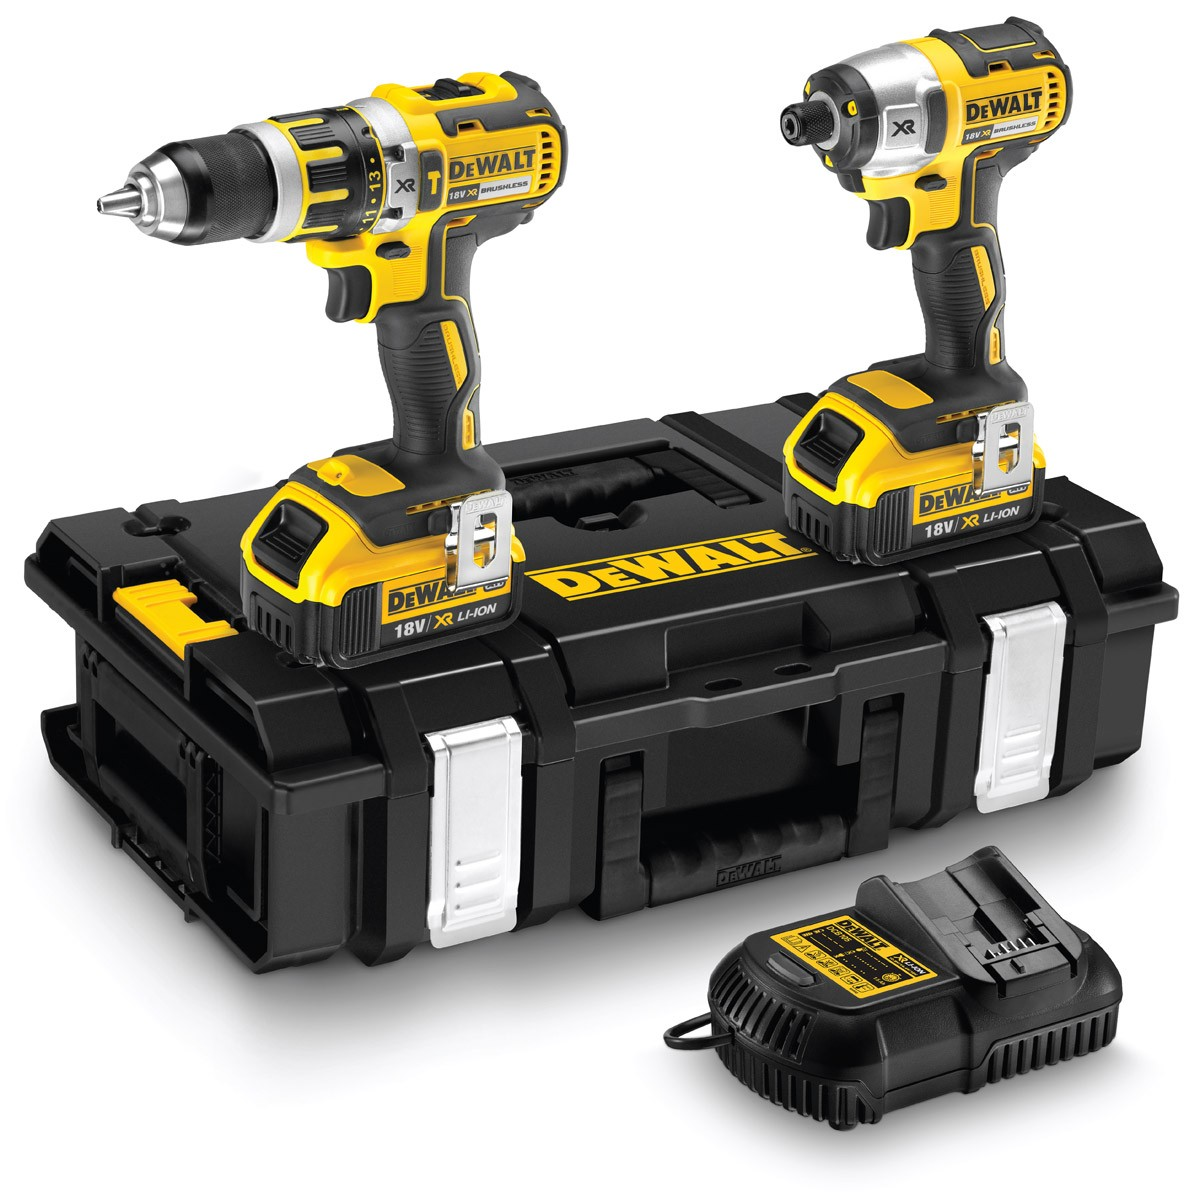 DeWalt DCK250M2 18V XR li-ion Brushless Combi Drill and Impact Driver Twinpack Inc 2 x 4Ah Batt